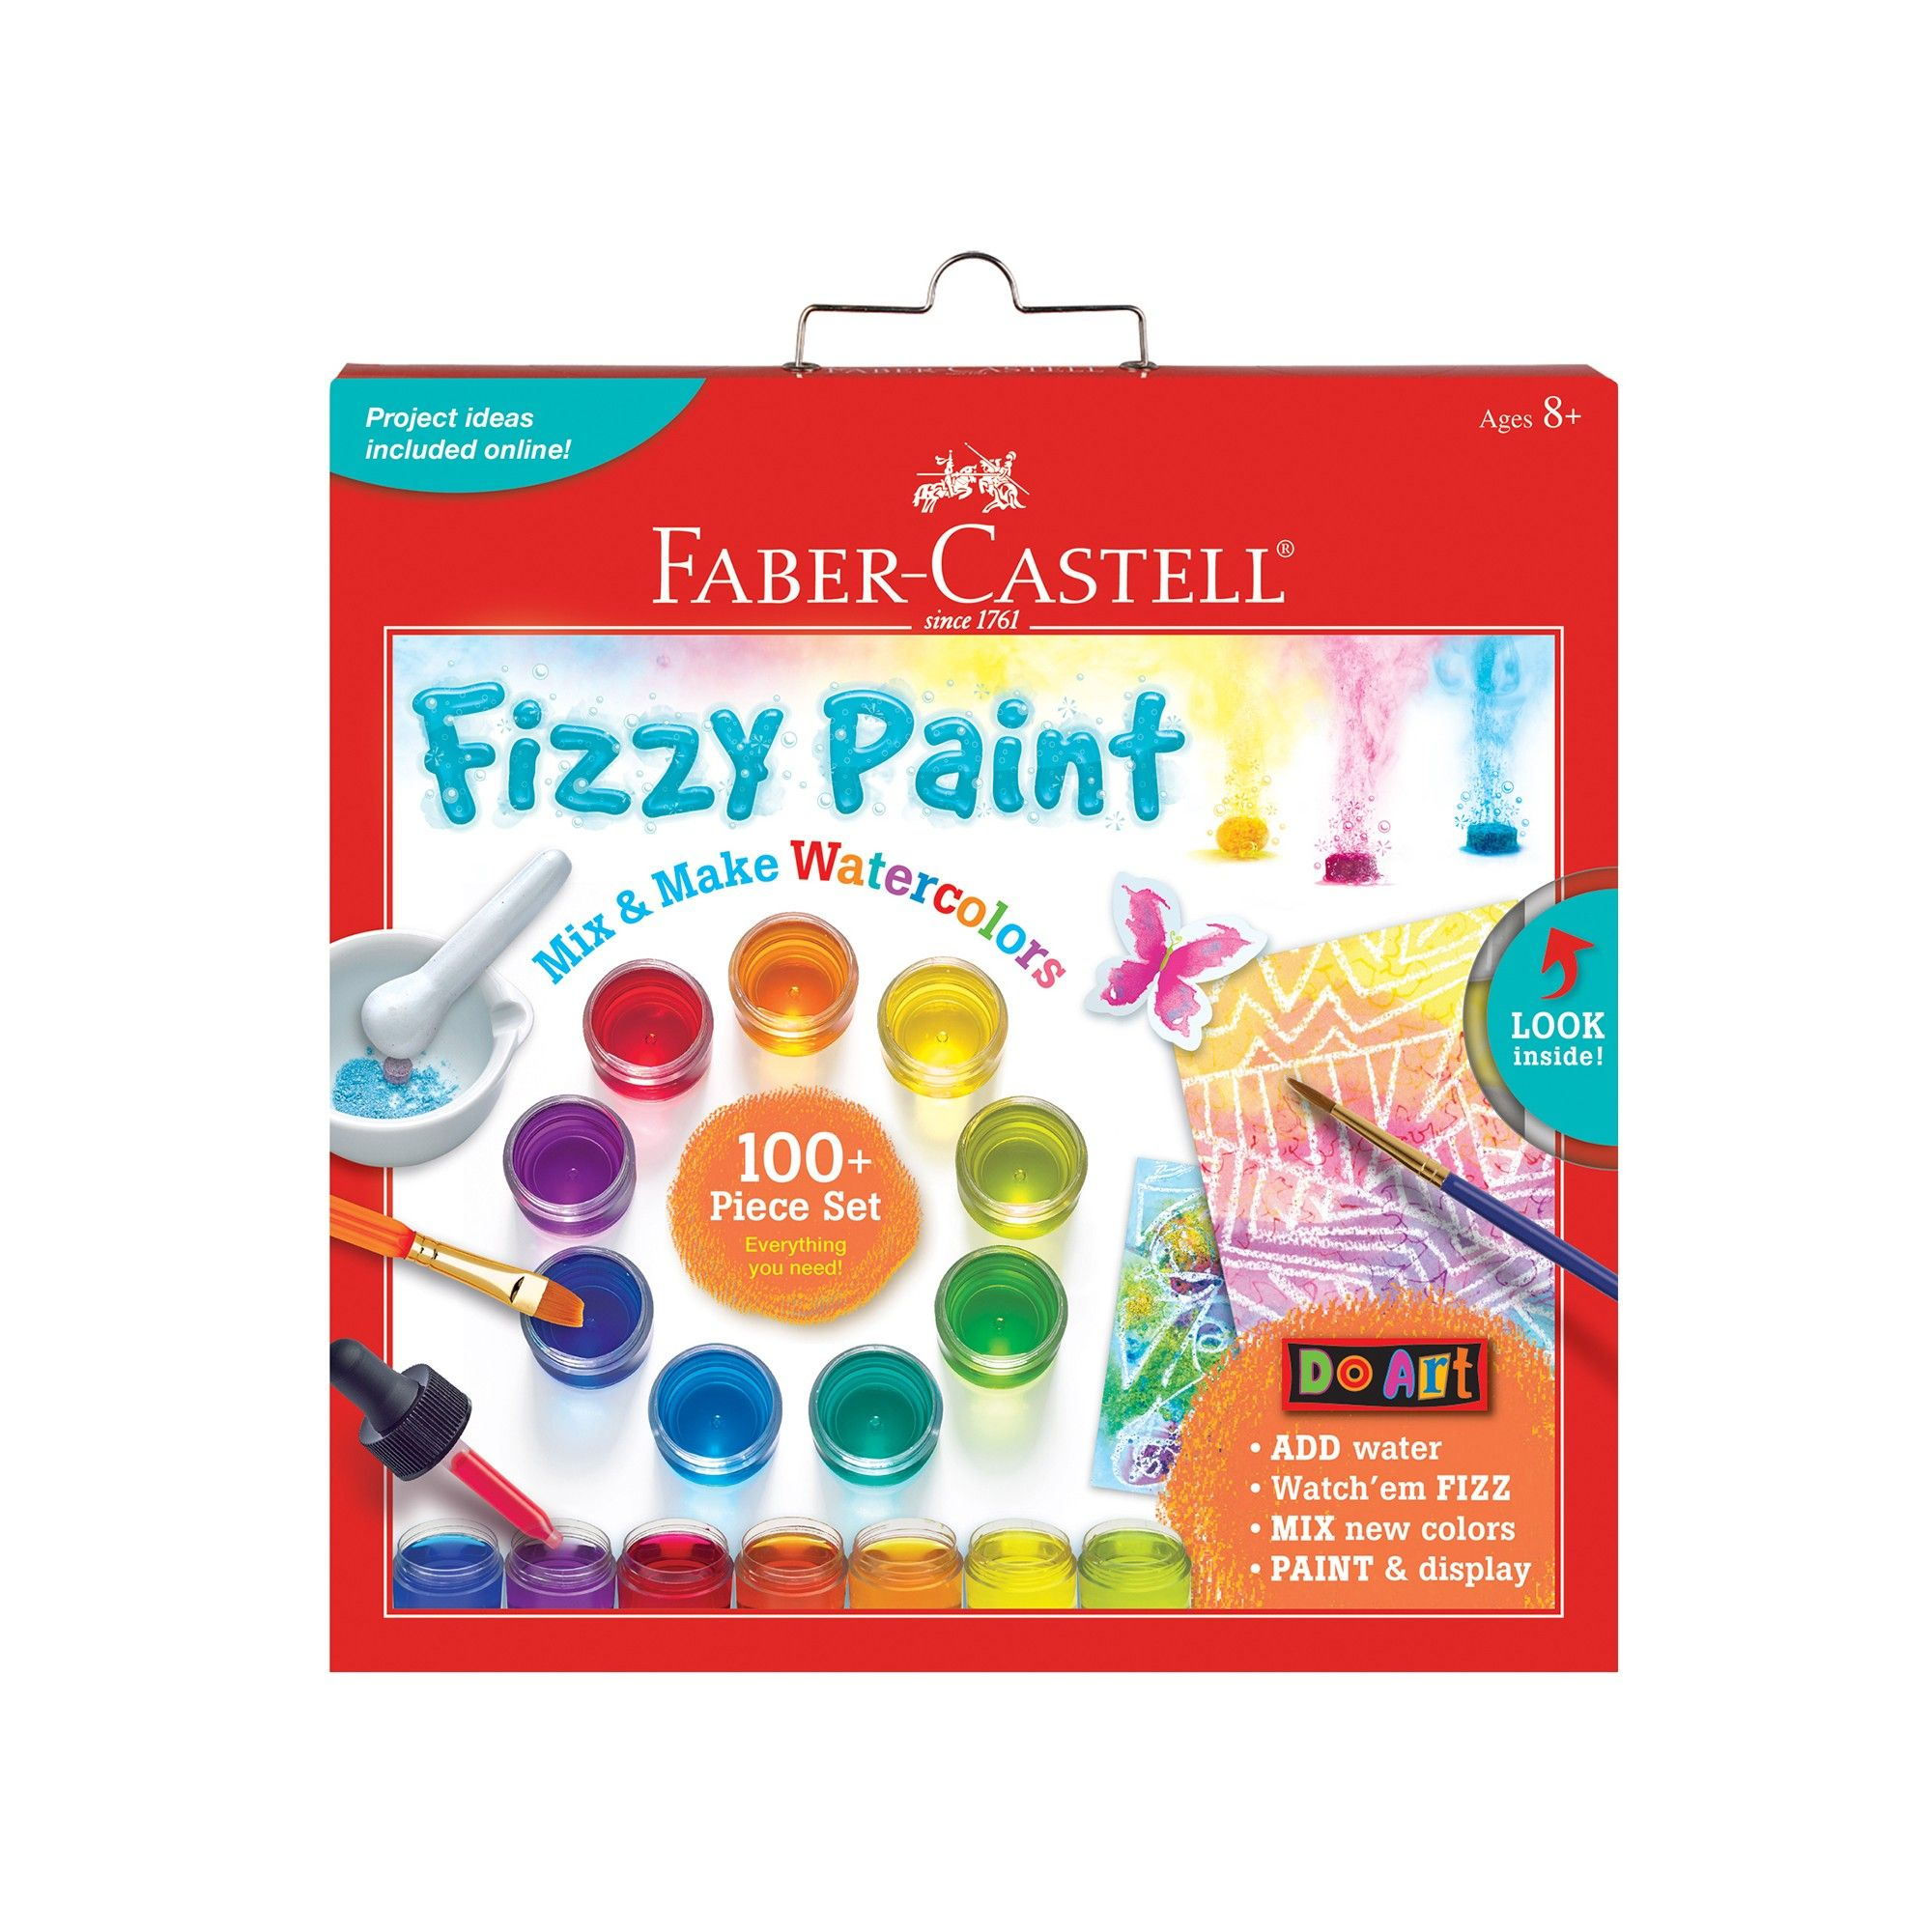 Faber Castell Fizzy Paint Watercolor Kit Watercolor Kit Make